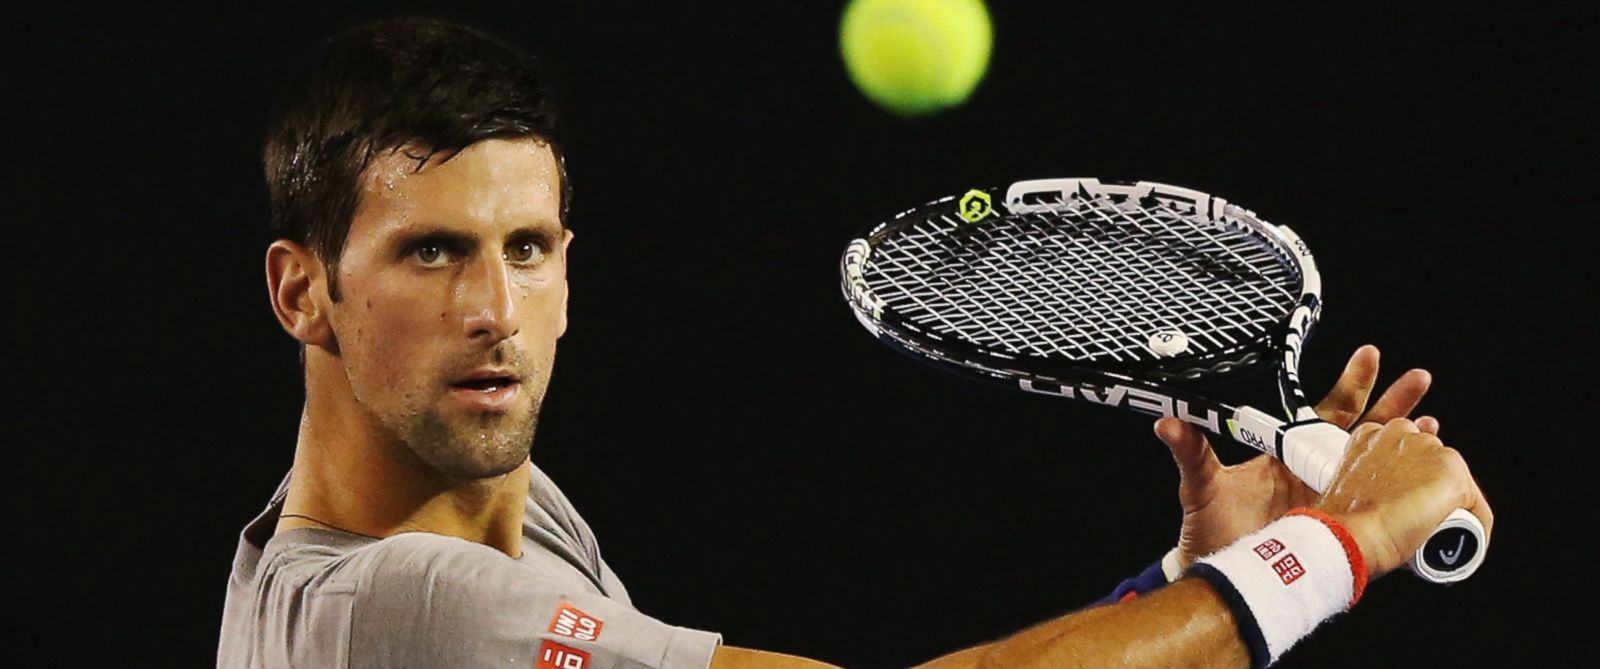 PHOTO:Novak Djokovic of Serbia hits a backhand volley during a practice session ahead of the 2016 Australian Open at Melbourne Park, January 14, 2016 in Melbourne, Australia.